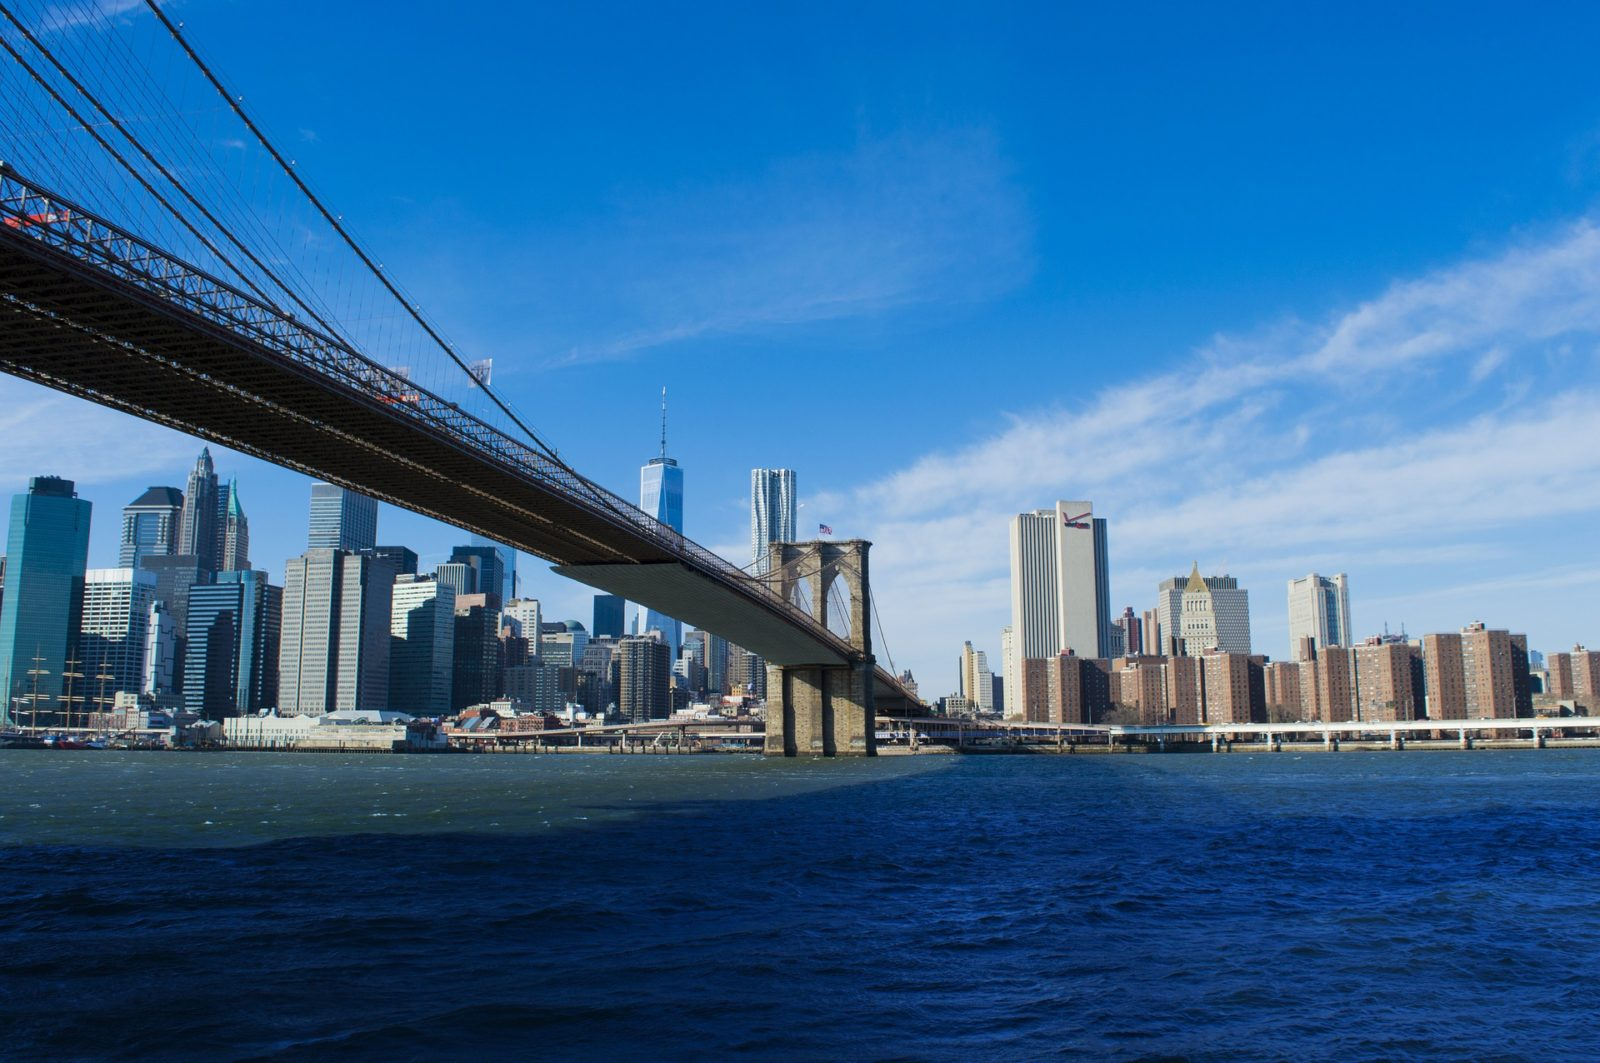 Top 10 Cities To Visit In The USA